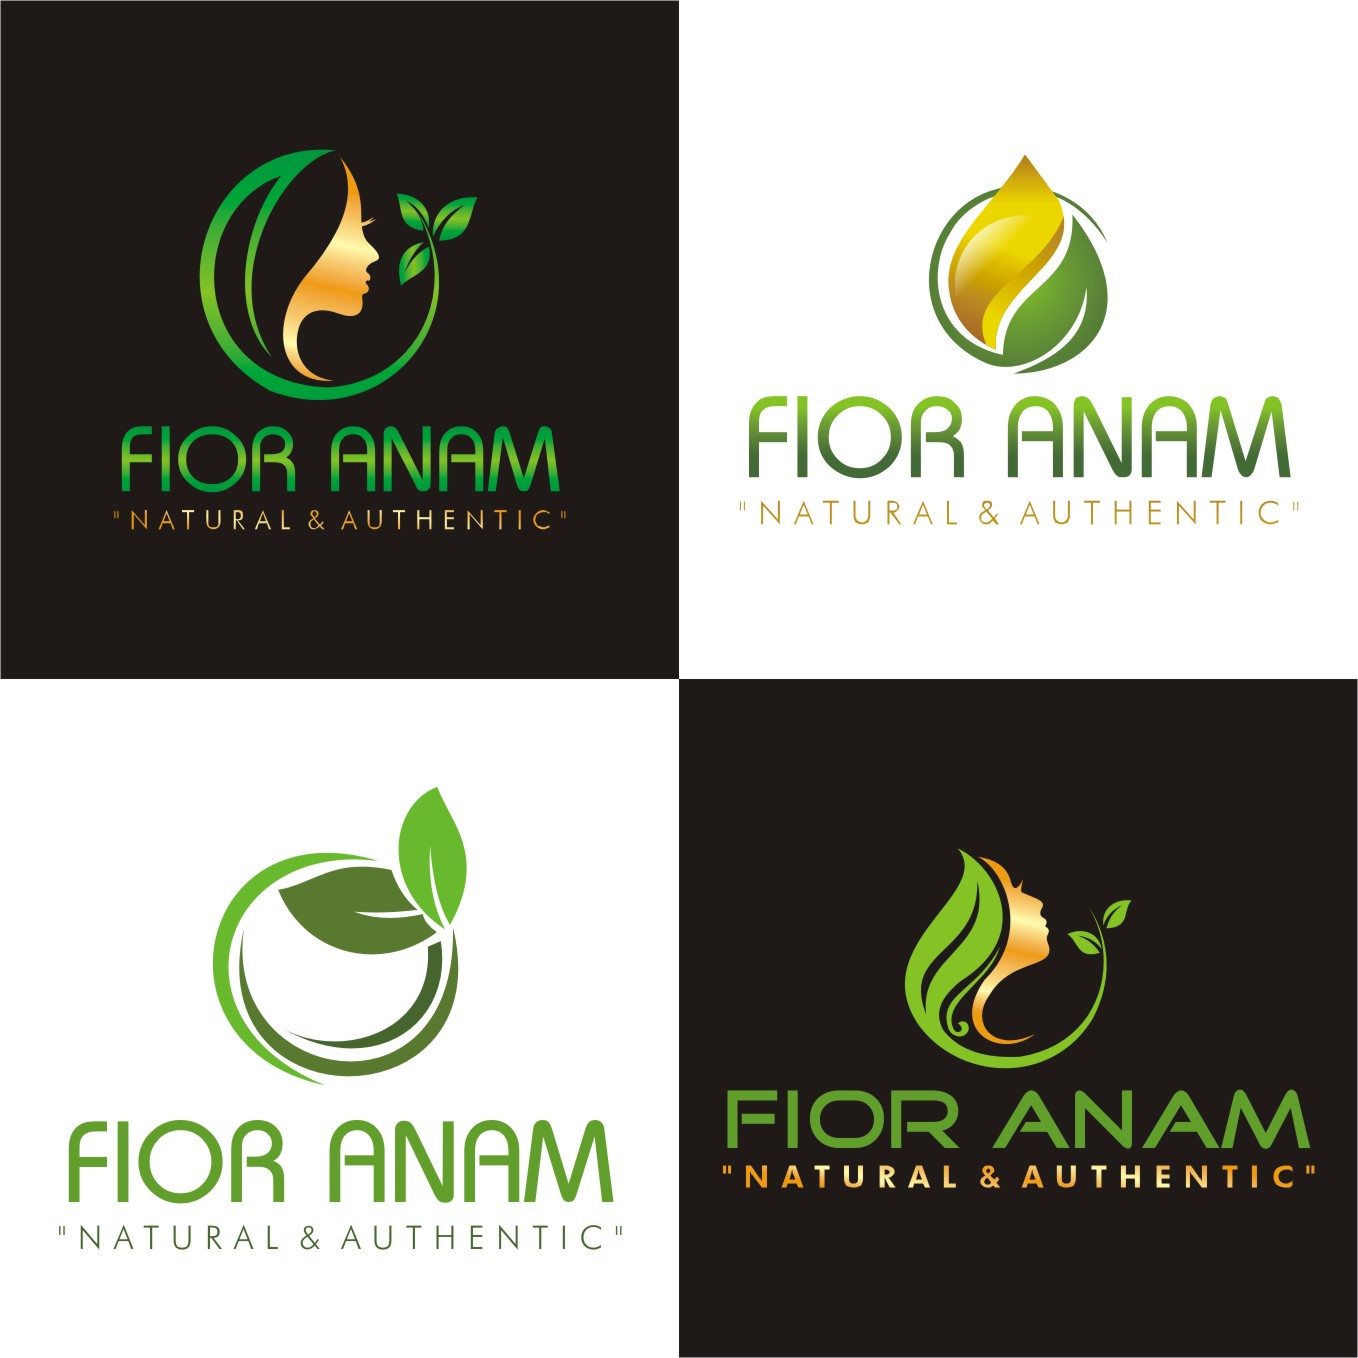 Logo Design by Lynx Graphics - Entry No. 395 in the Logo Design Contest Creative Logo Design for Fior Anam.